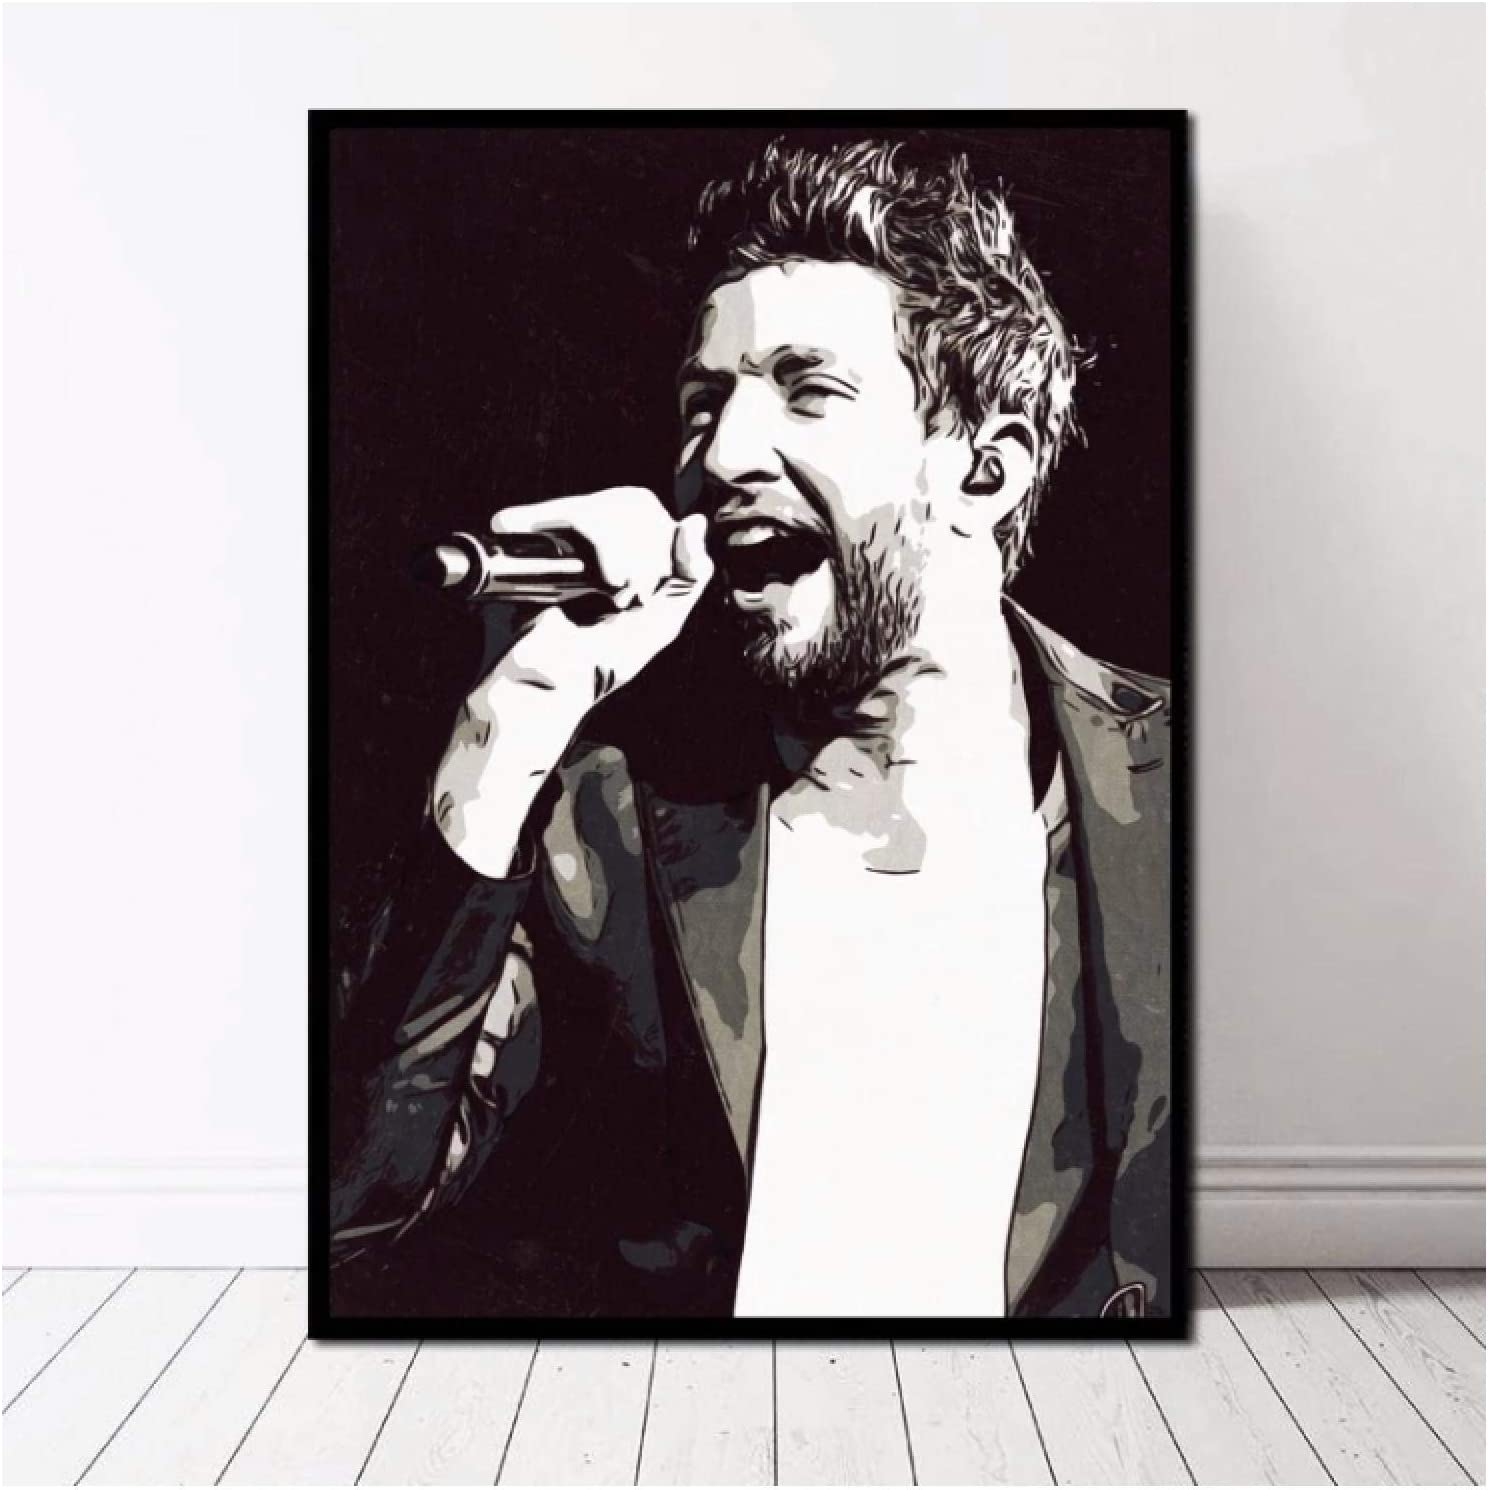 CAOHD Brett Eldredge Poster Canvas Print Home Decor Wall Art Print On Canvas for Living Room Decor Great Gift -50X70Cm No Frame